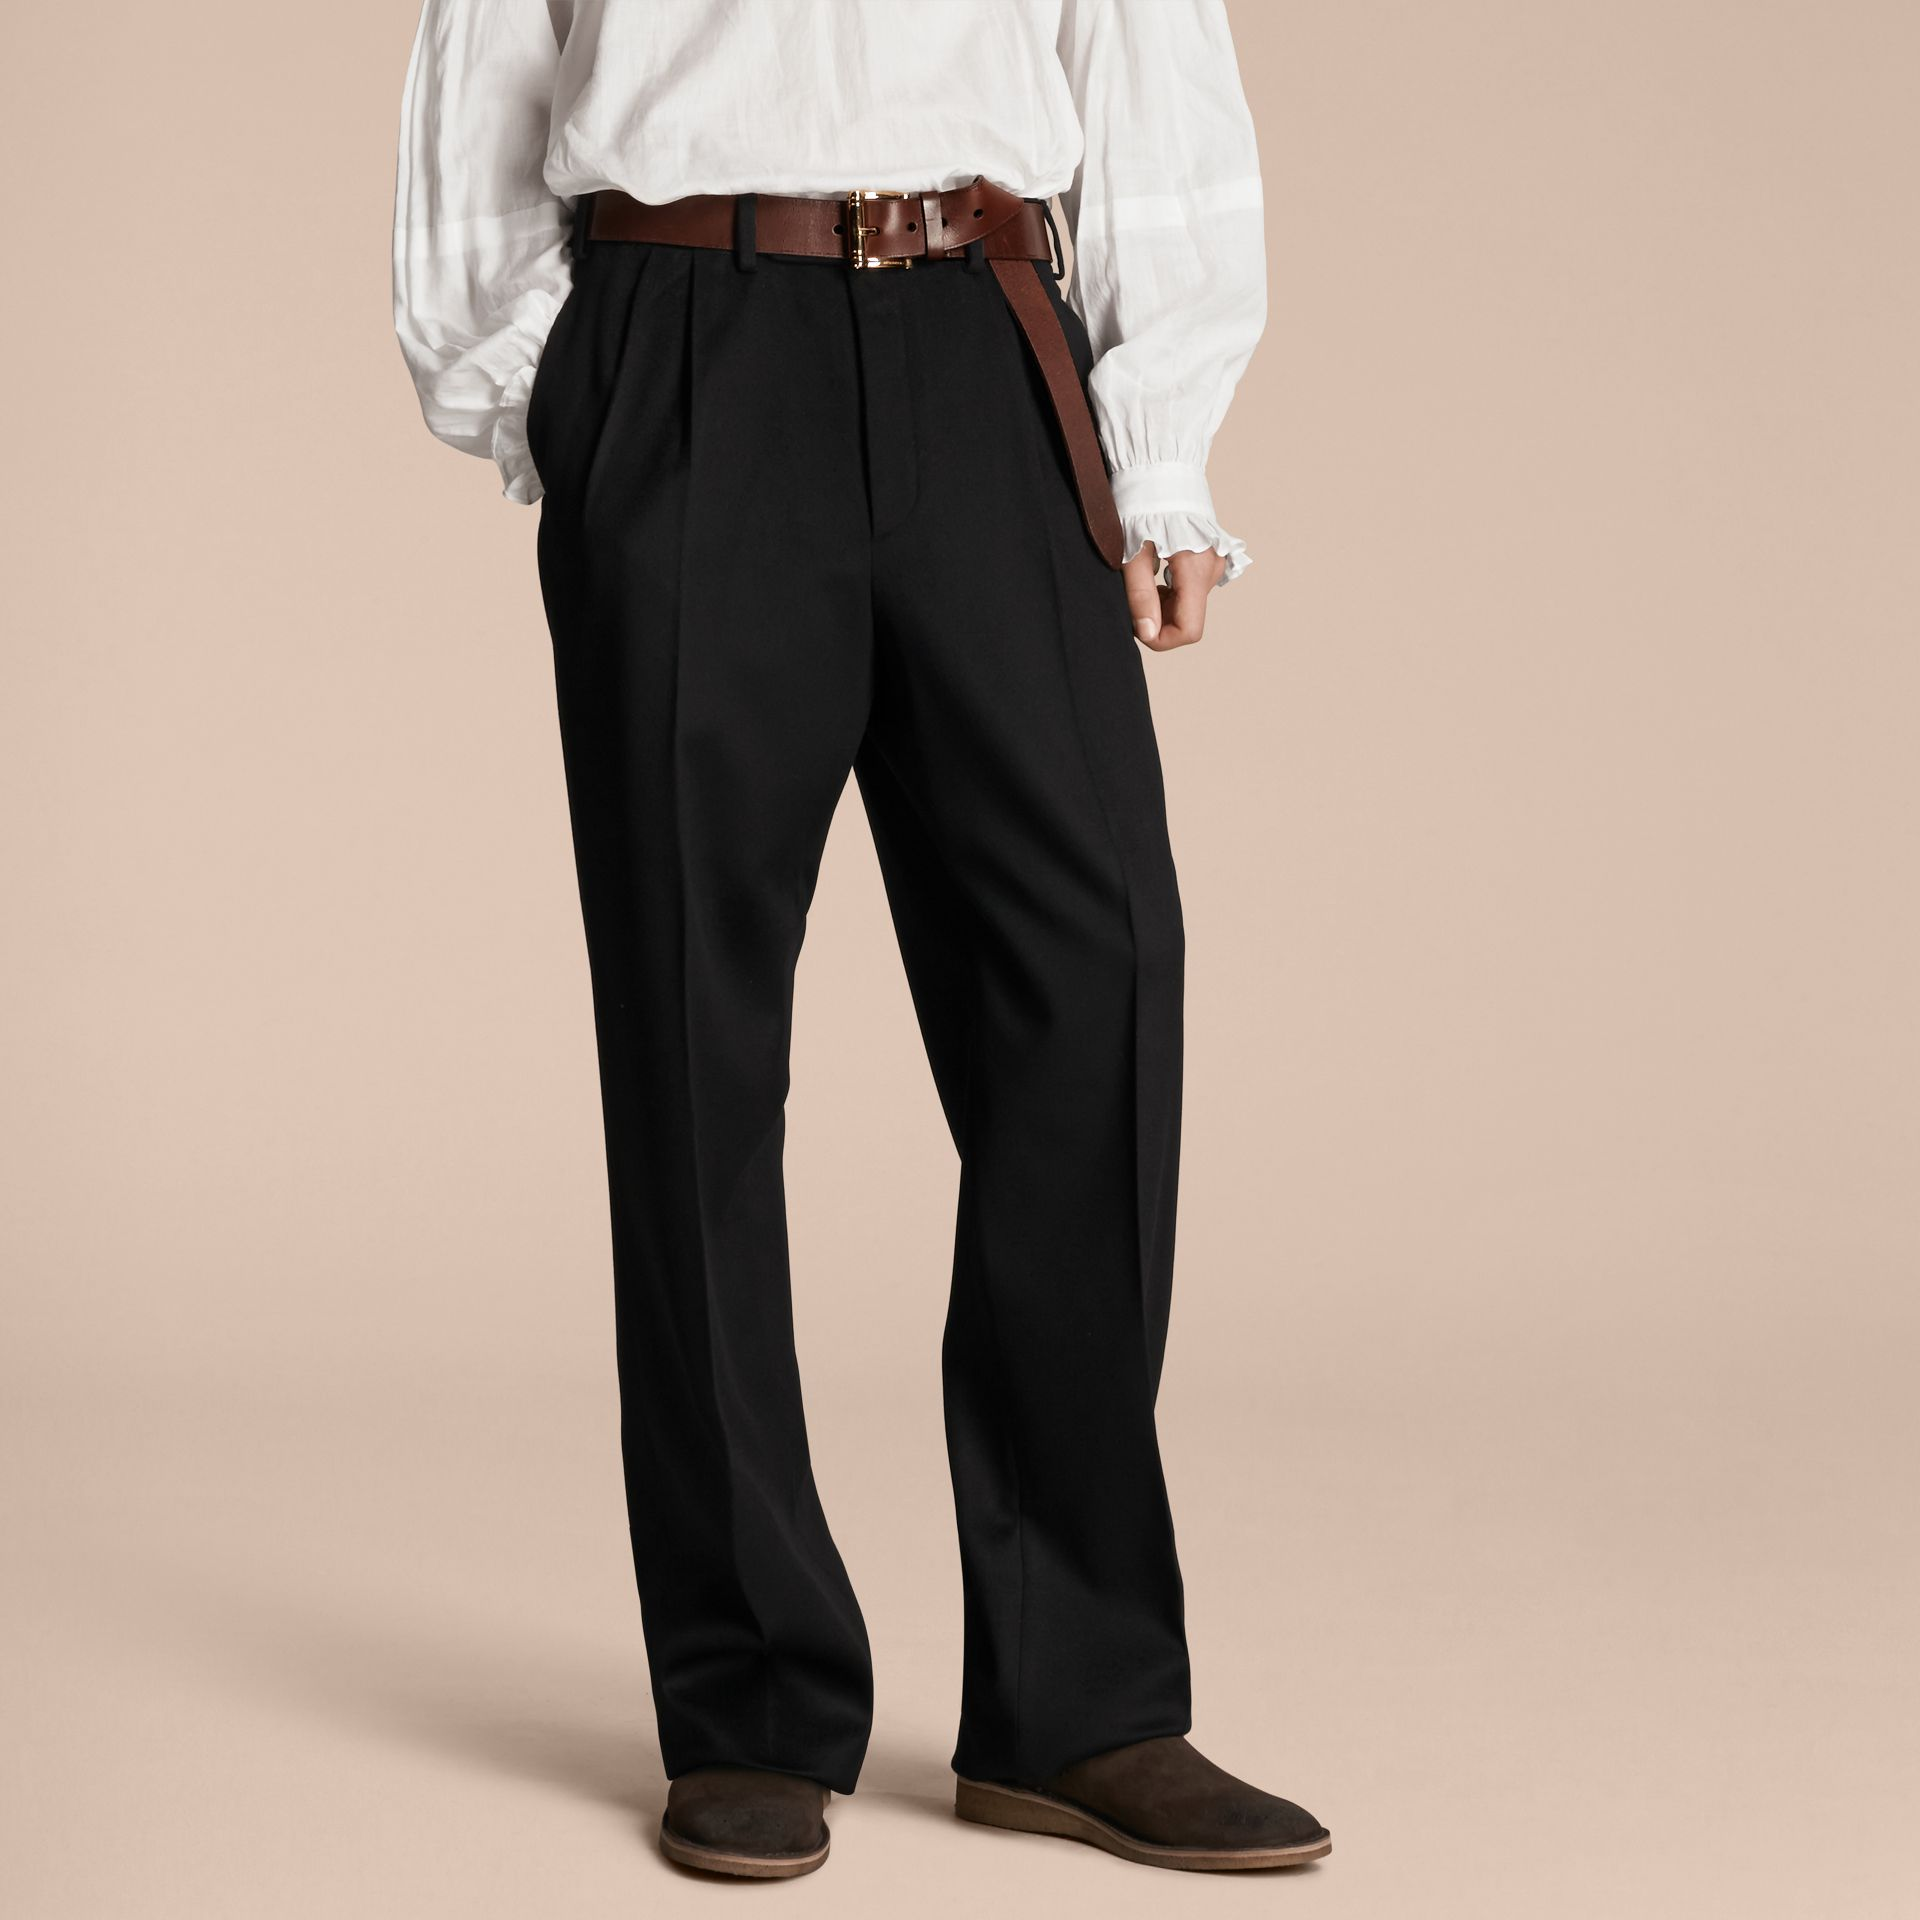 Wide-leg English Moleskin Wool Trousers - gallery image 1